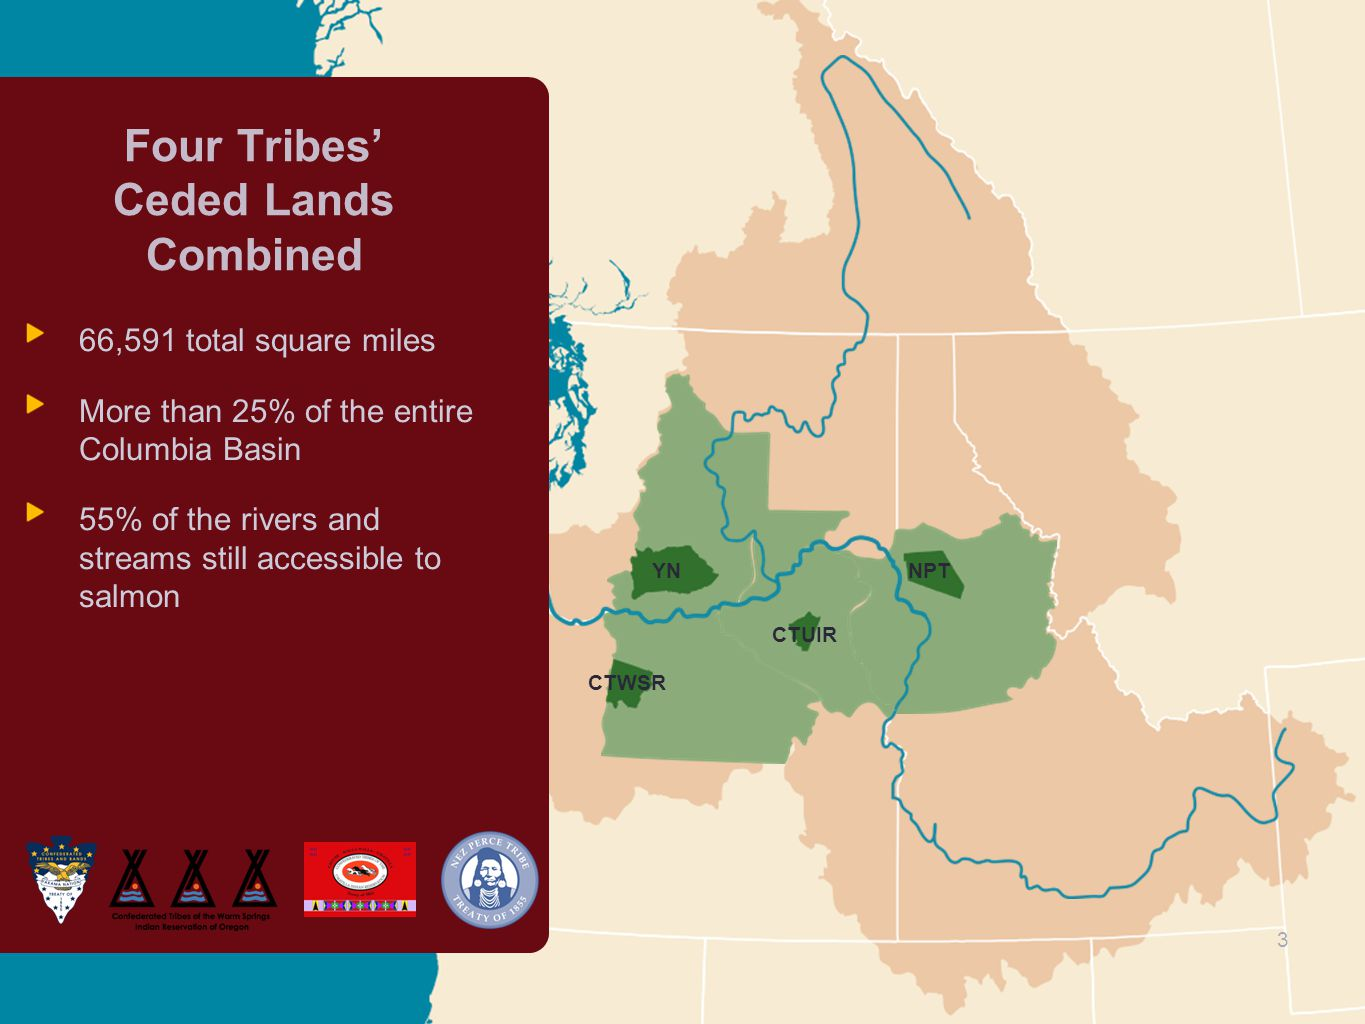 3 3 Four Tribes' Ceded Lands Combined 66,591 total square miles More than 25% of the entire Columbia Basin 55% of the rivers and streams still accessible to salmon YNNPT CTUIR CTWSR